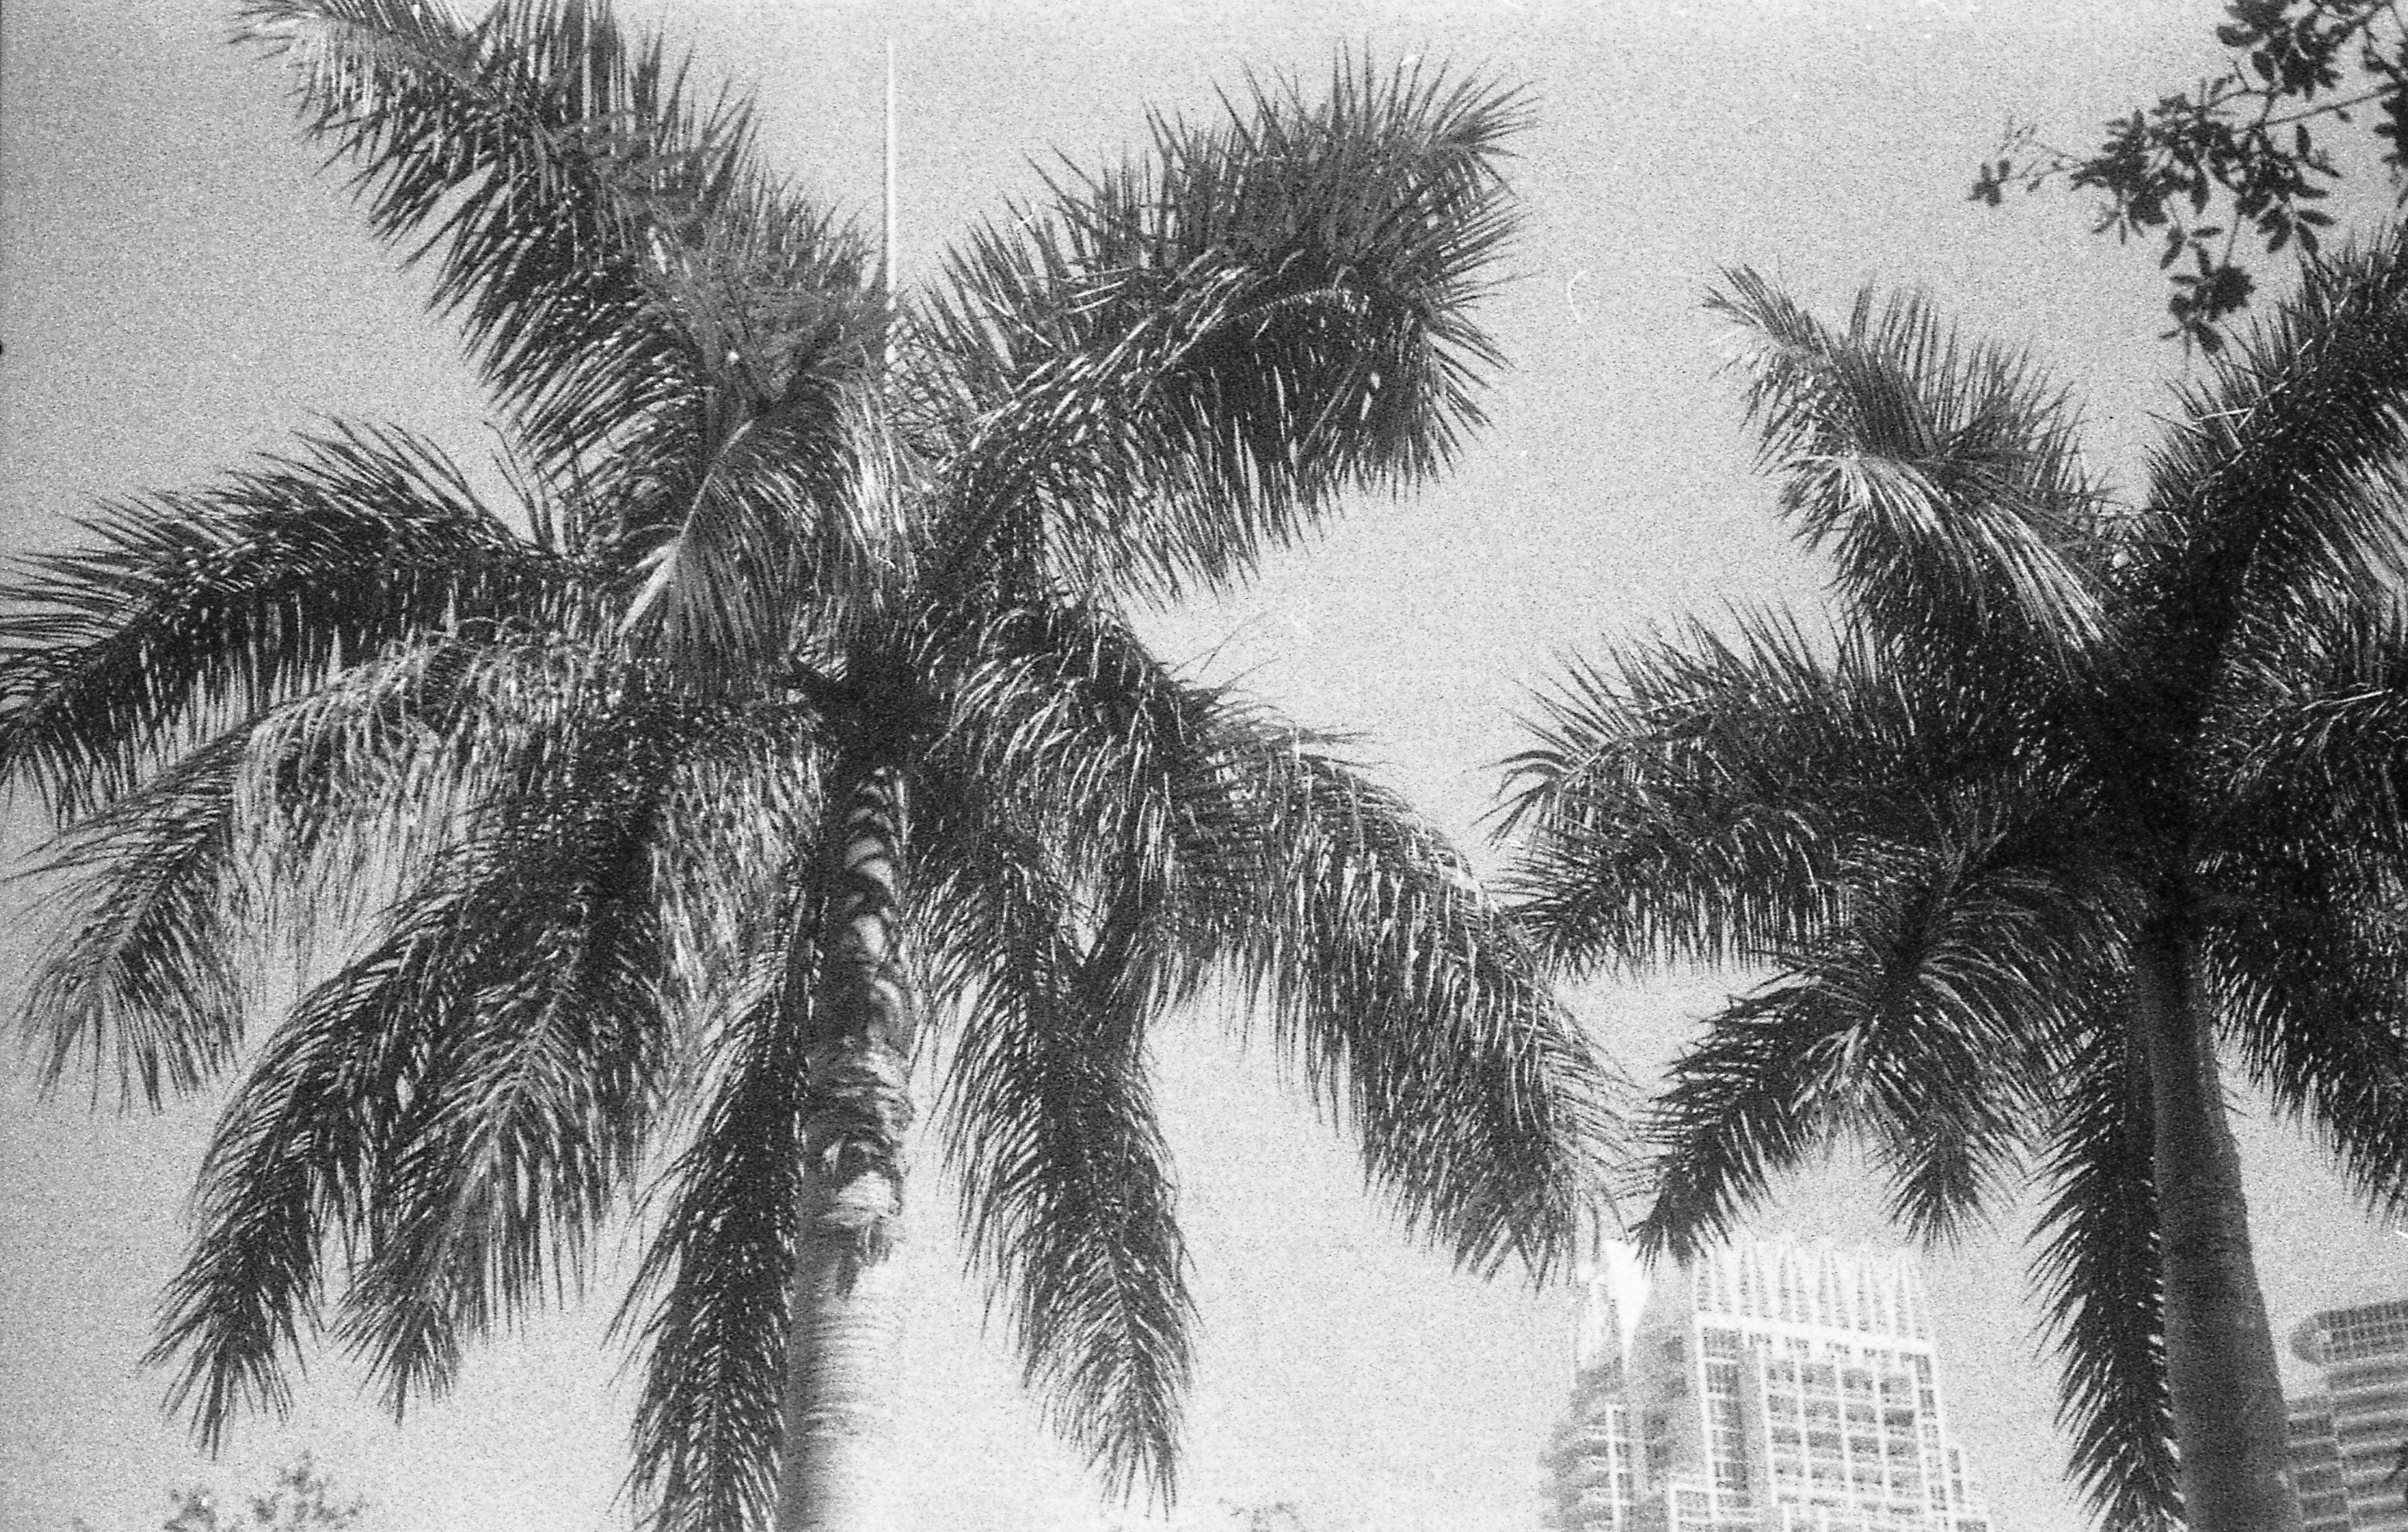 The dance of the palm trees,